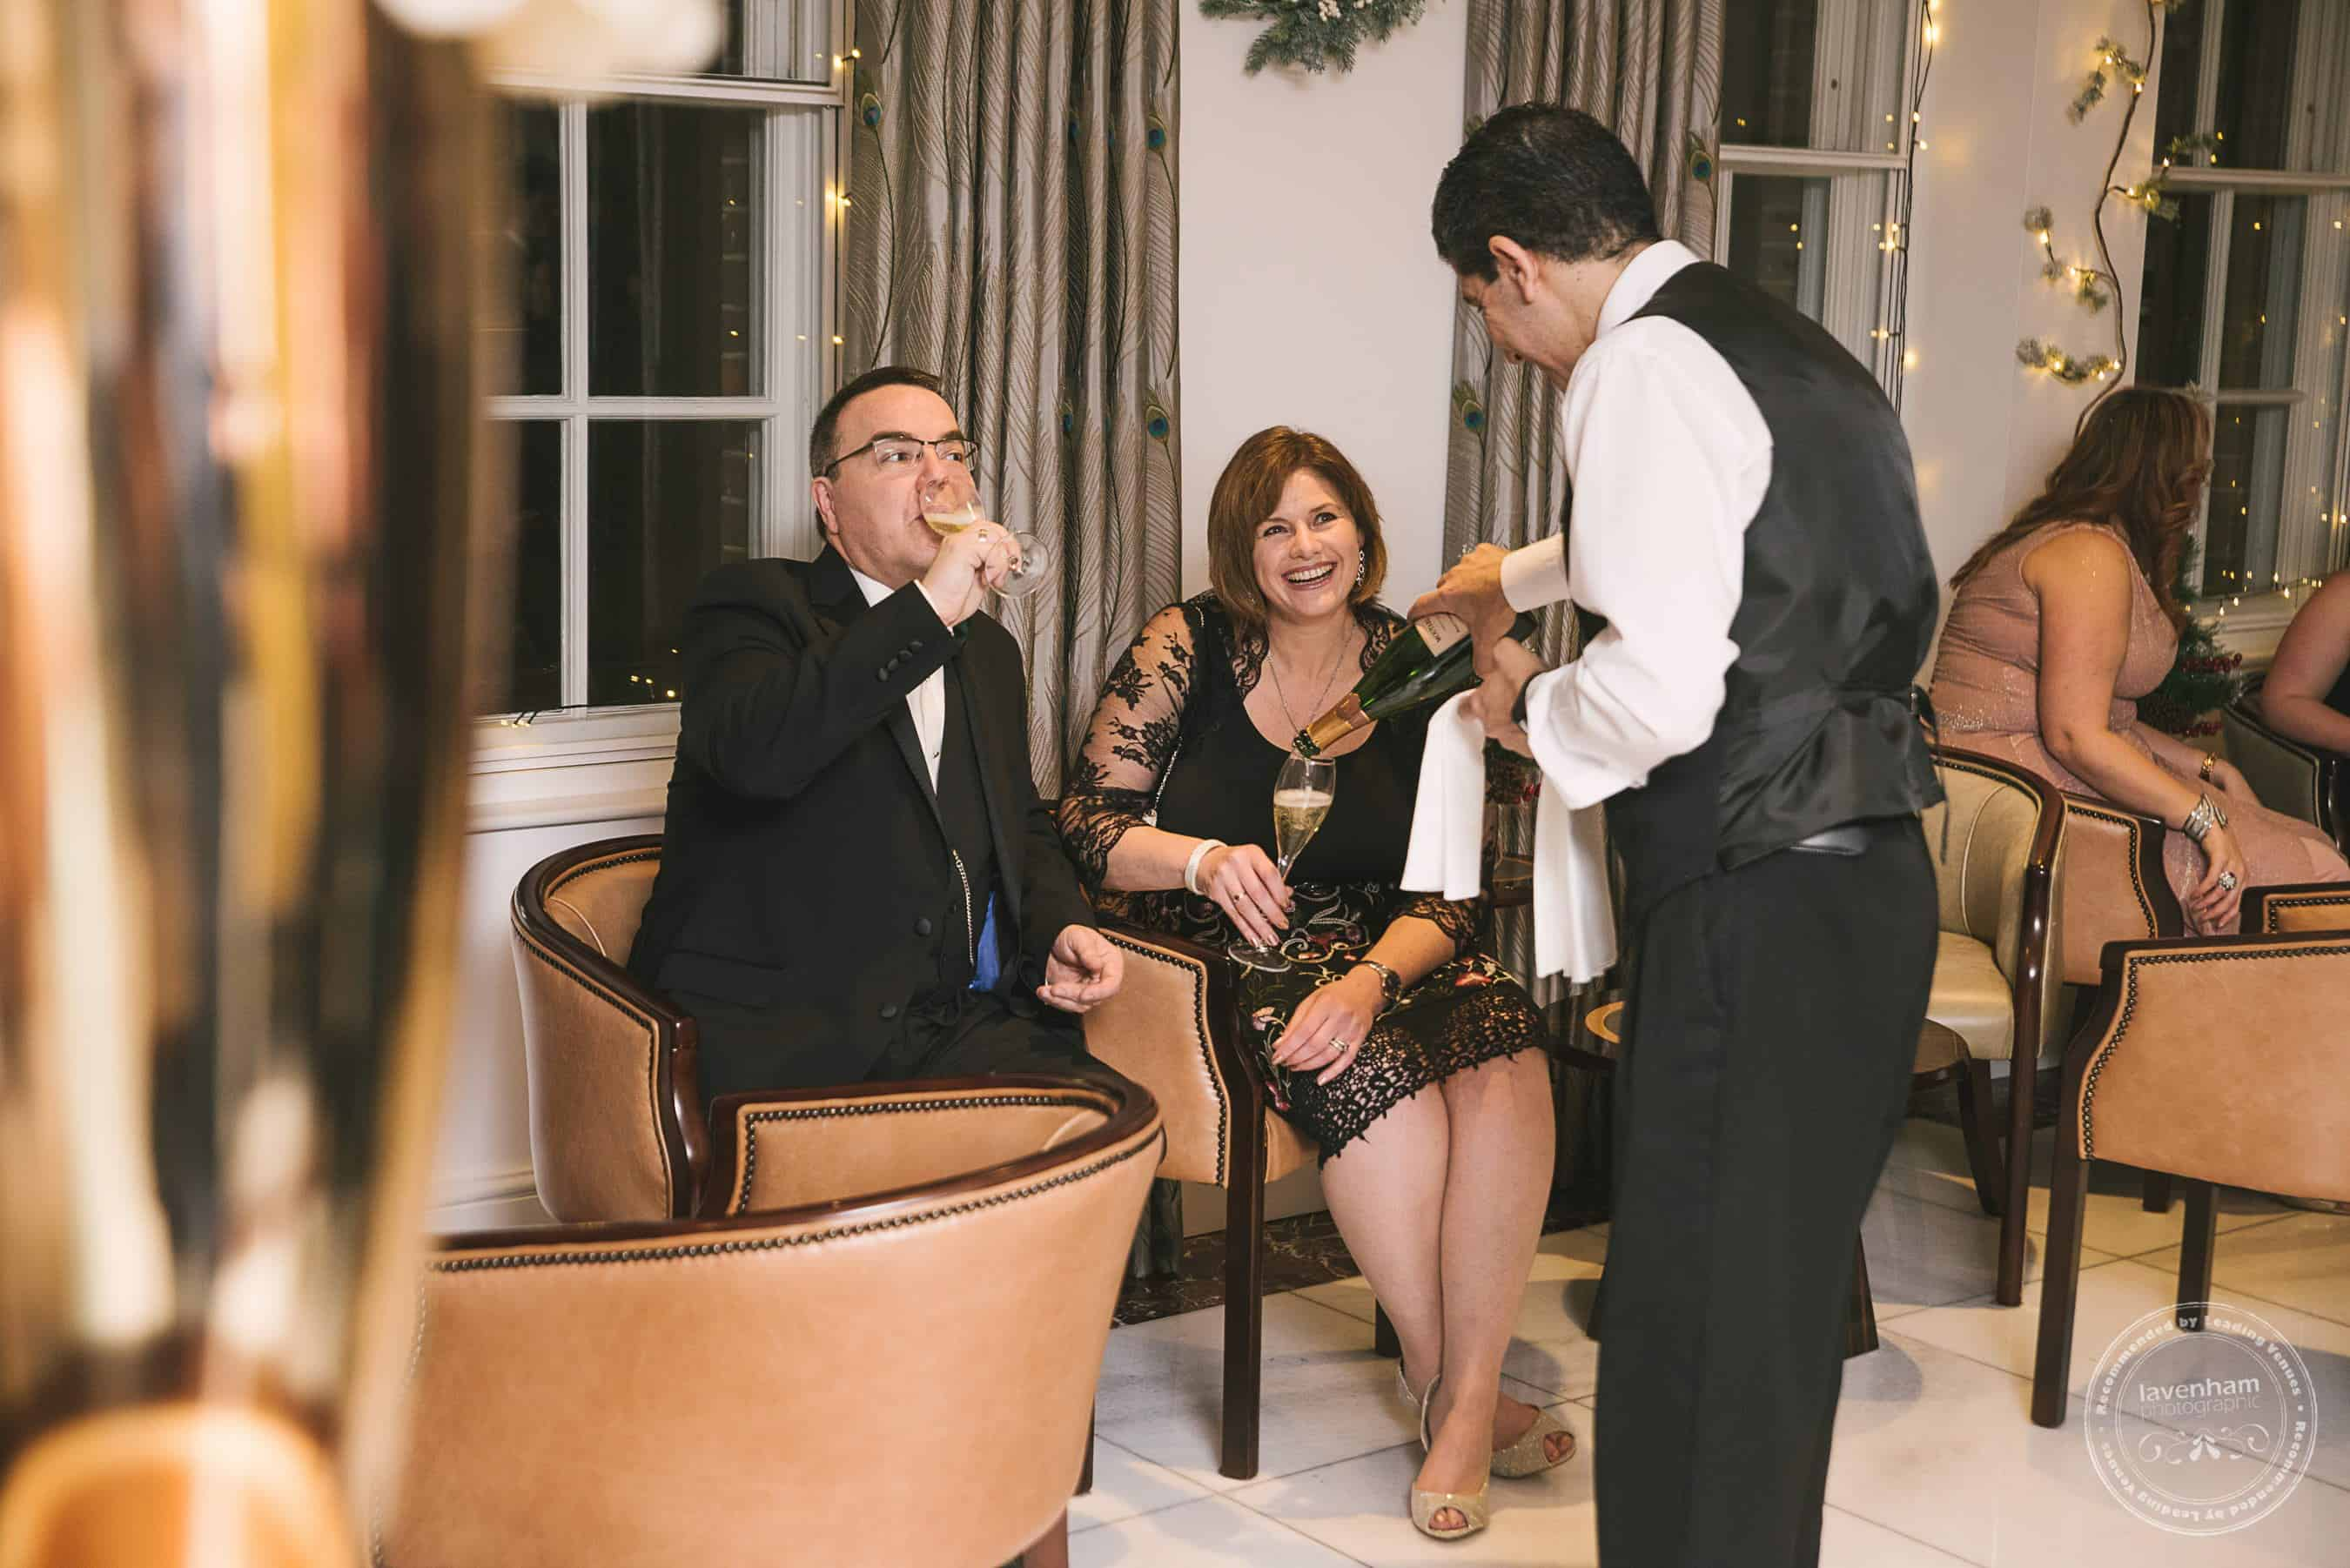 211218 Greyfriars Colchester Wedding Photography Essex Lavenham Photographic 043